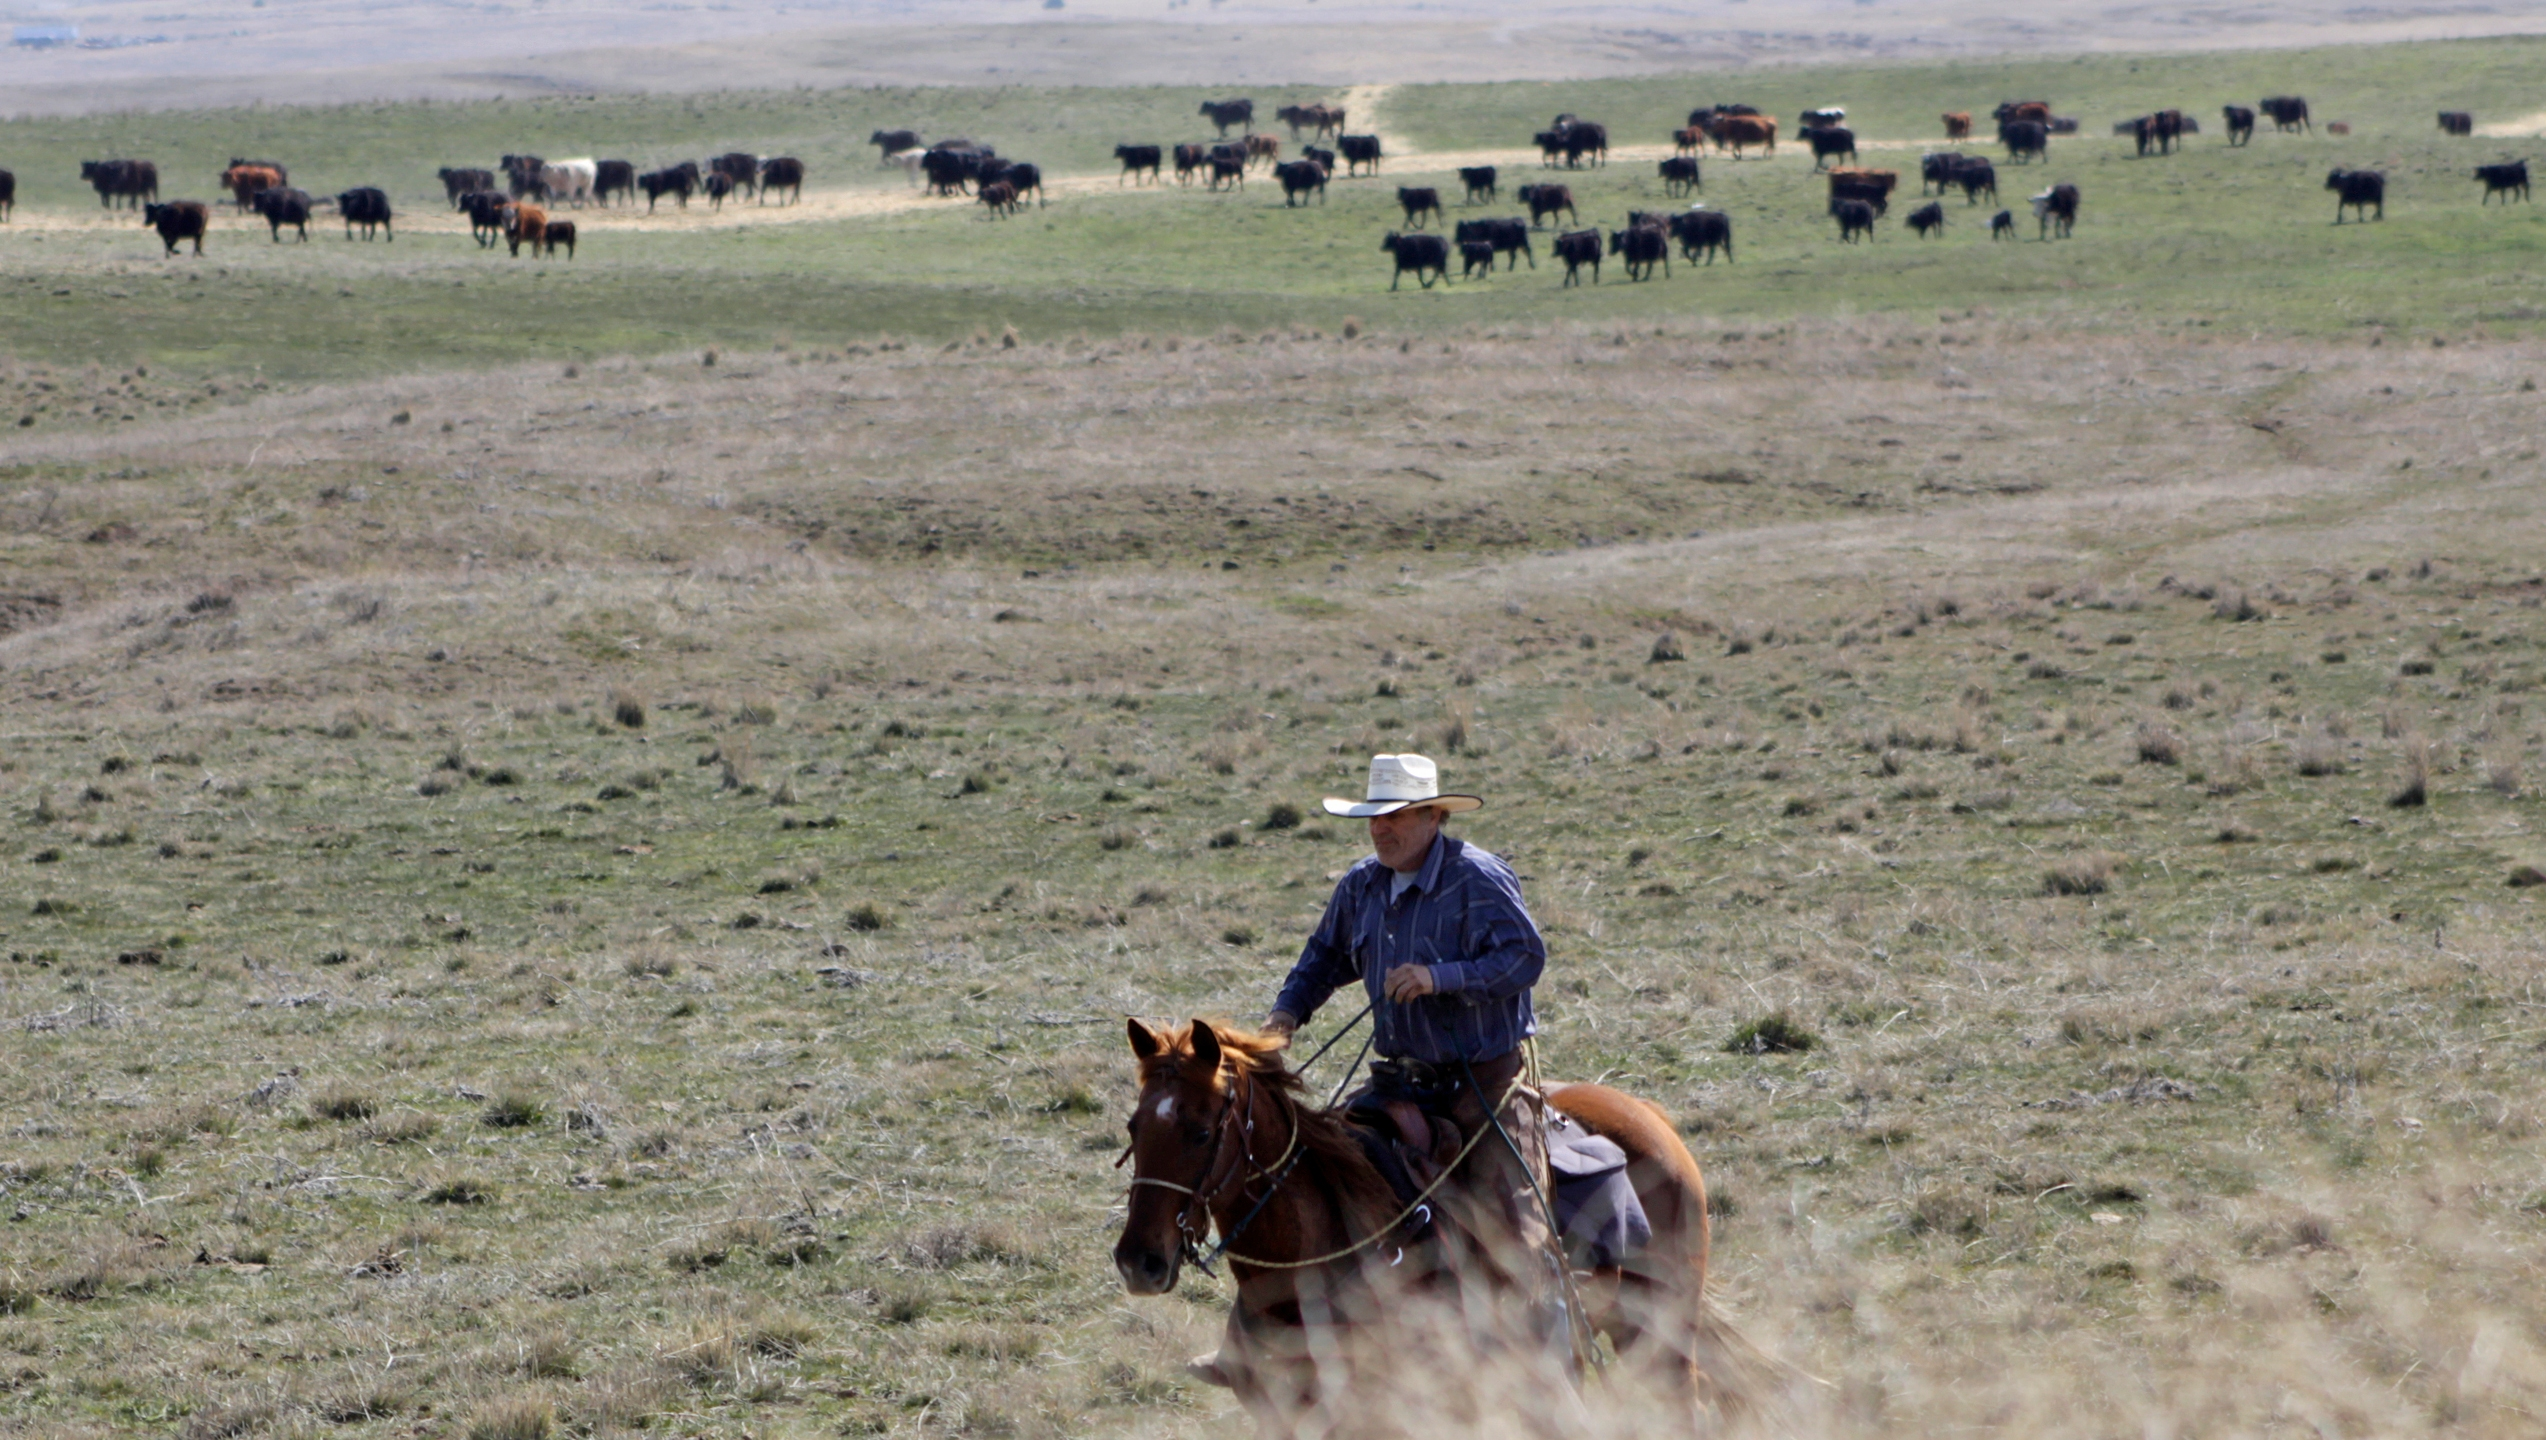 Cattle rancher Joe Whitesell rides his horse in a field near Dufur, Oregon, as he helps a friend herd cattle. Tiny towns tucked into Oregon's windswept plains and cattle ranches miles from anywhere in South Dakota might not have had a single case of the new coronavirus yet, but their residents fear the spread of the disease to areas with scarce medical resources, the social isolation that comes when the only diner in town closes its doors and the economic free fall that's already hitting them hard. (AP Photo/Gillian Flaccus)